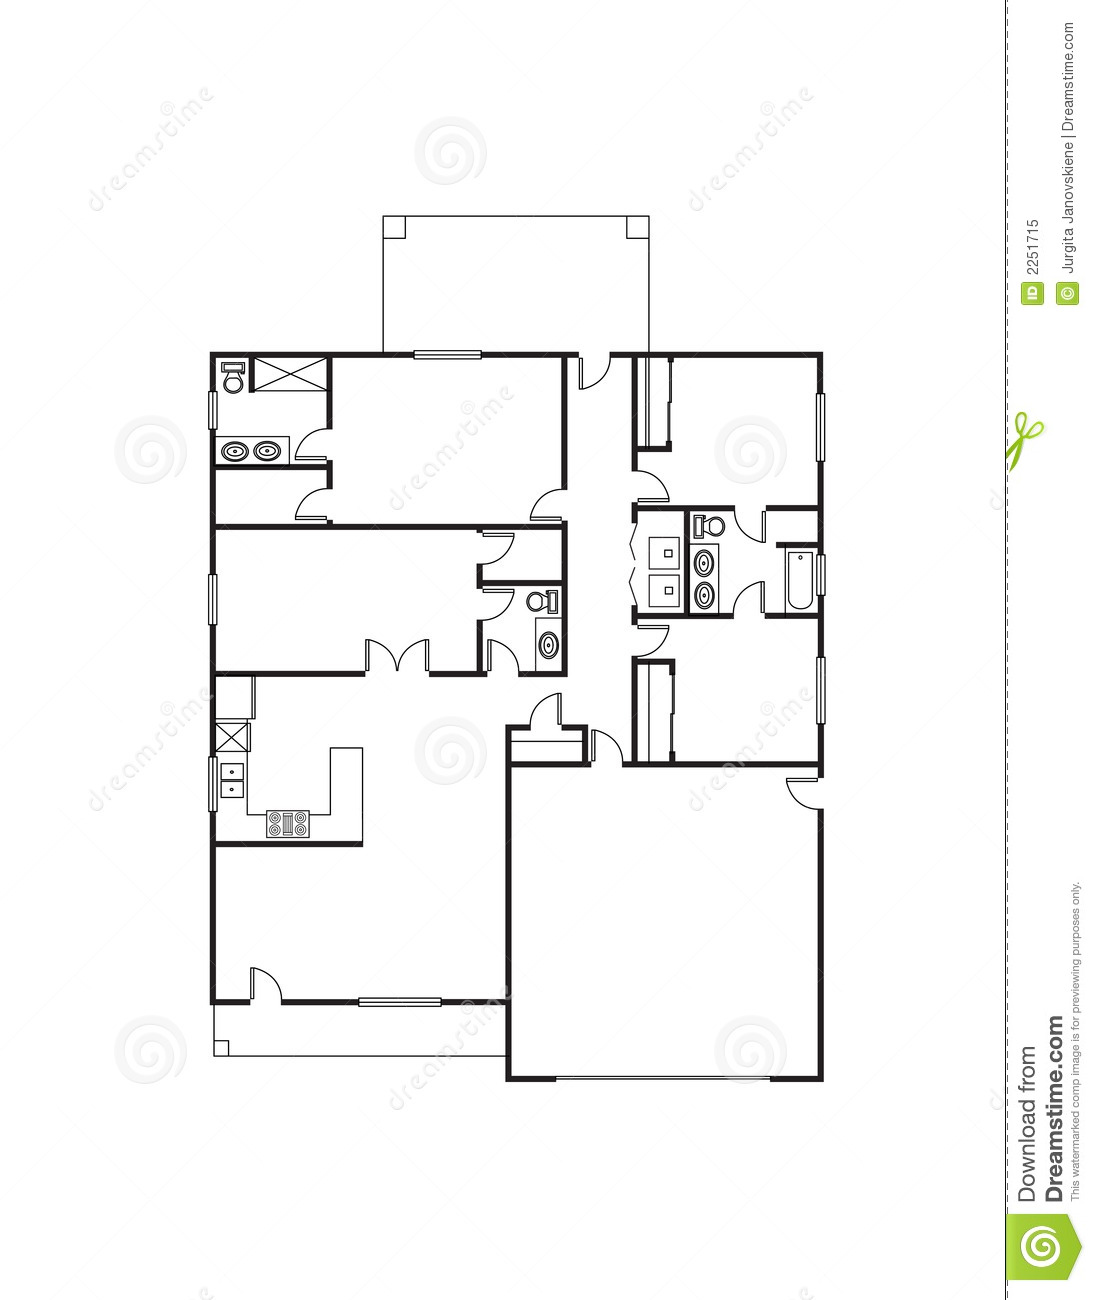 Single family house plans free single floor house plans for House plans for family of 4